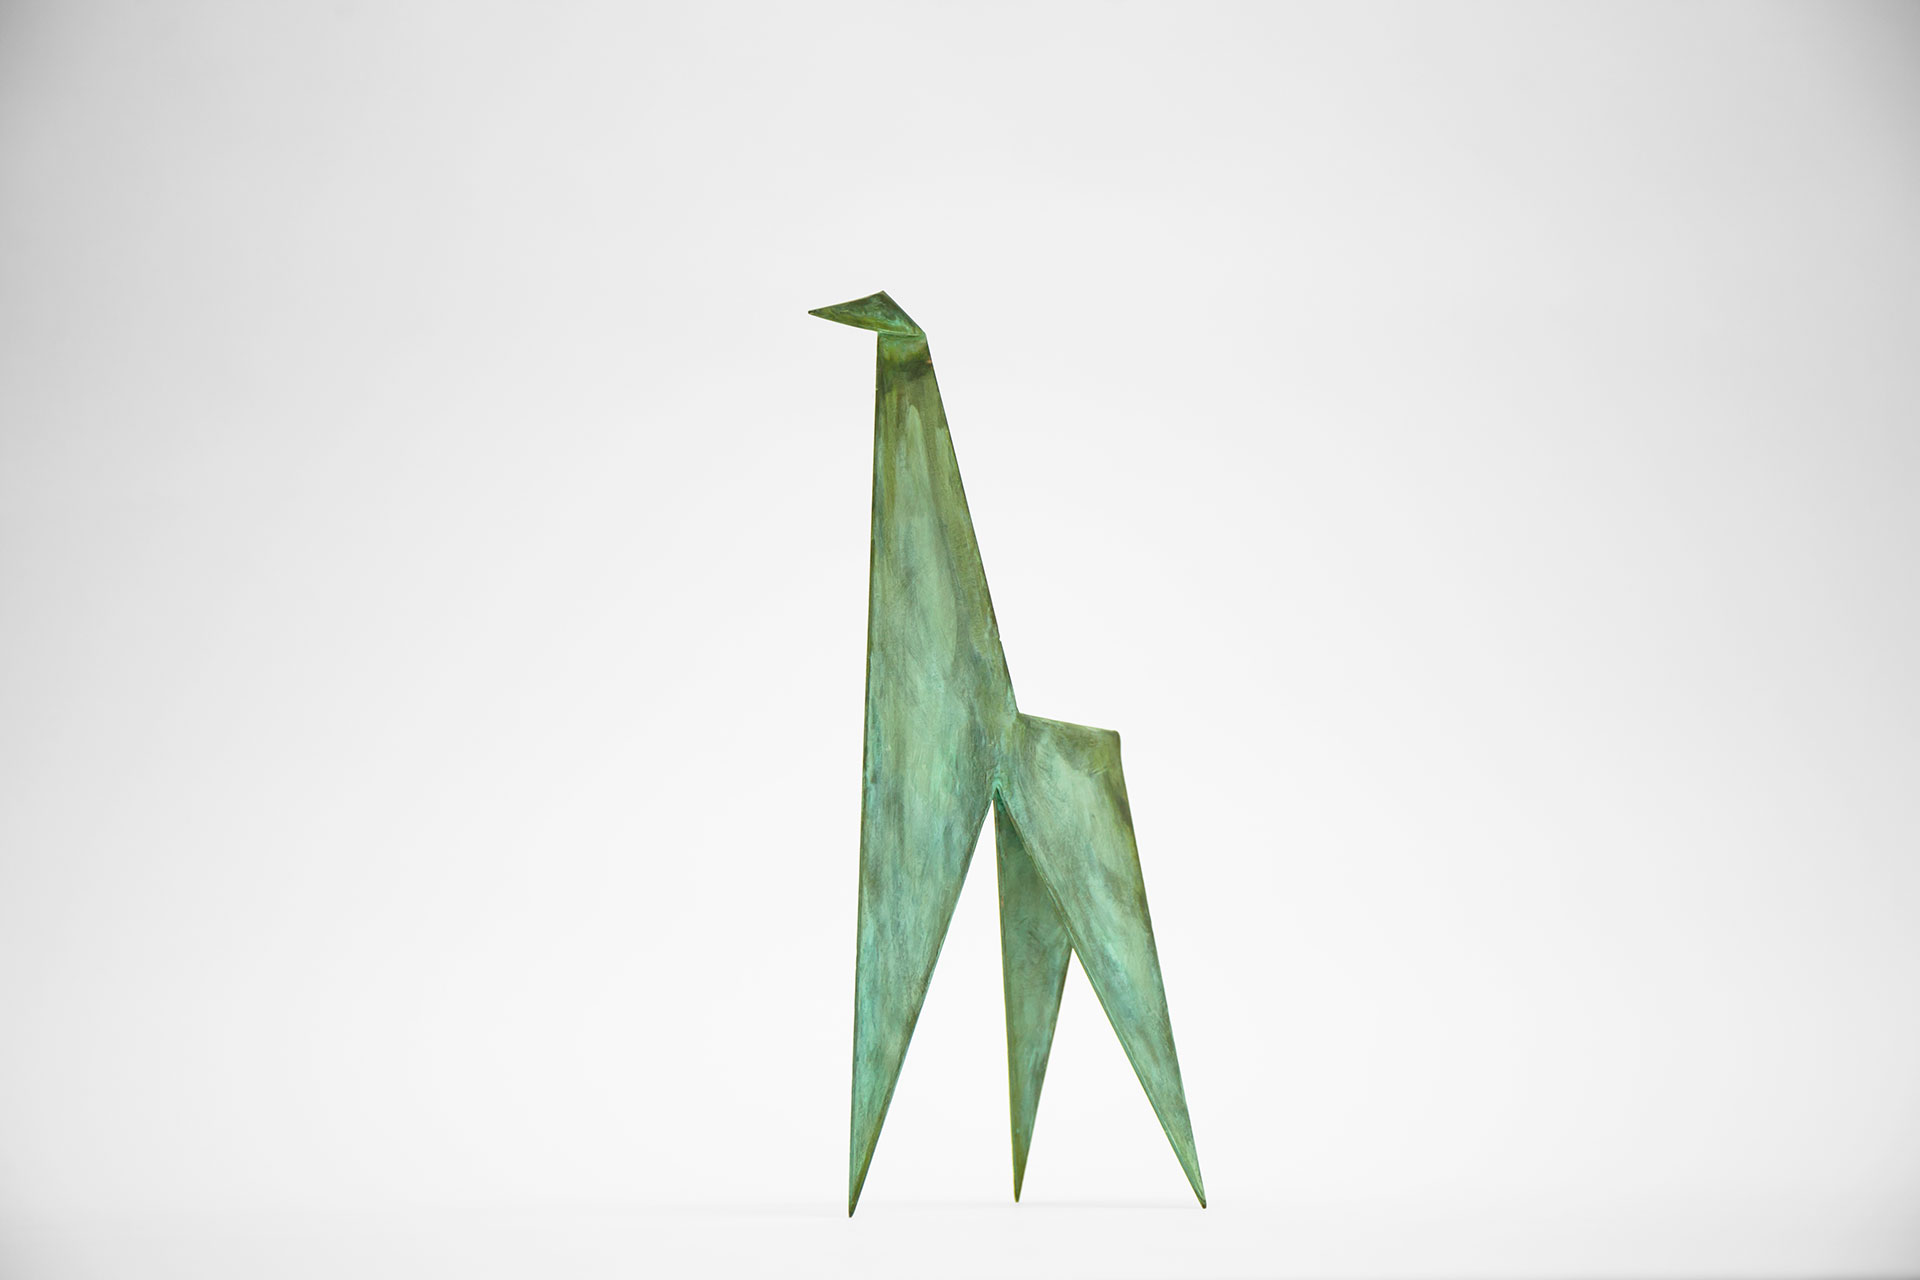 Metal origami sculpture in green patina inspired by modern conceptual art